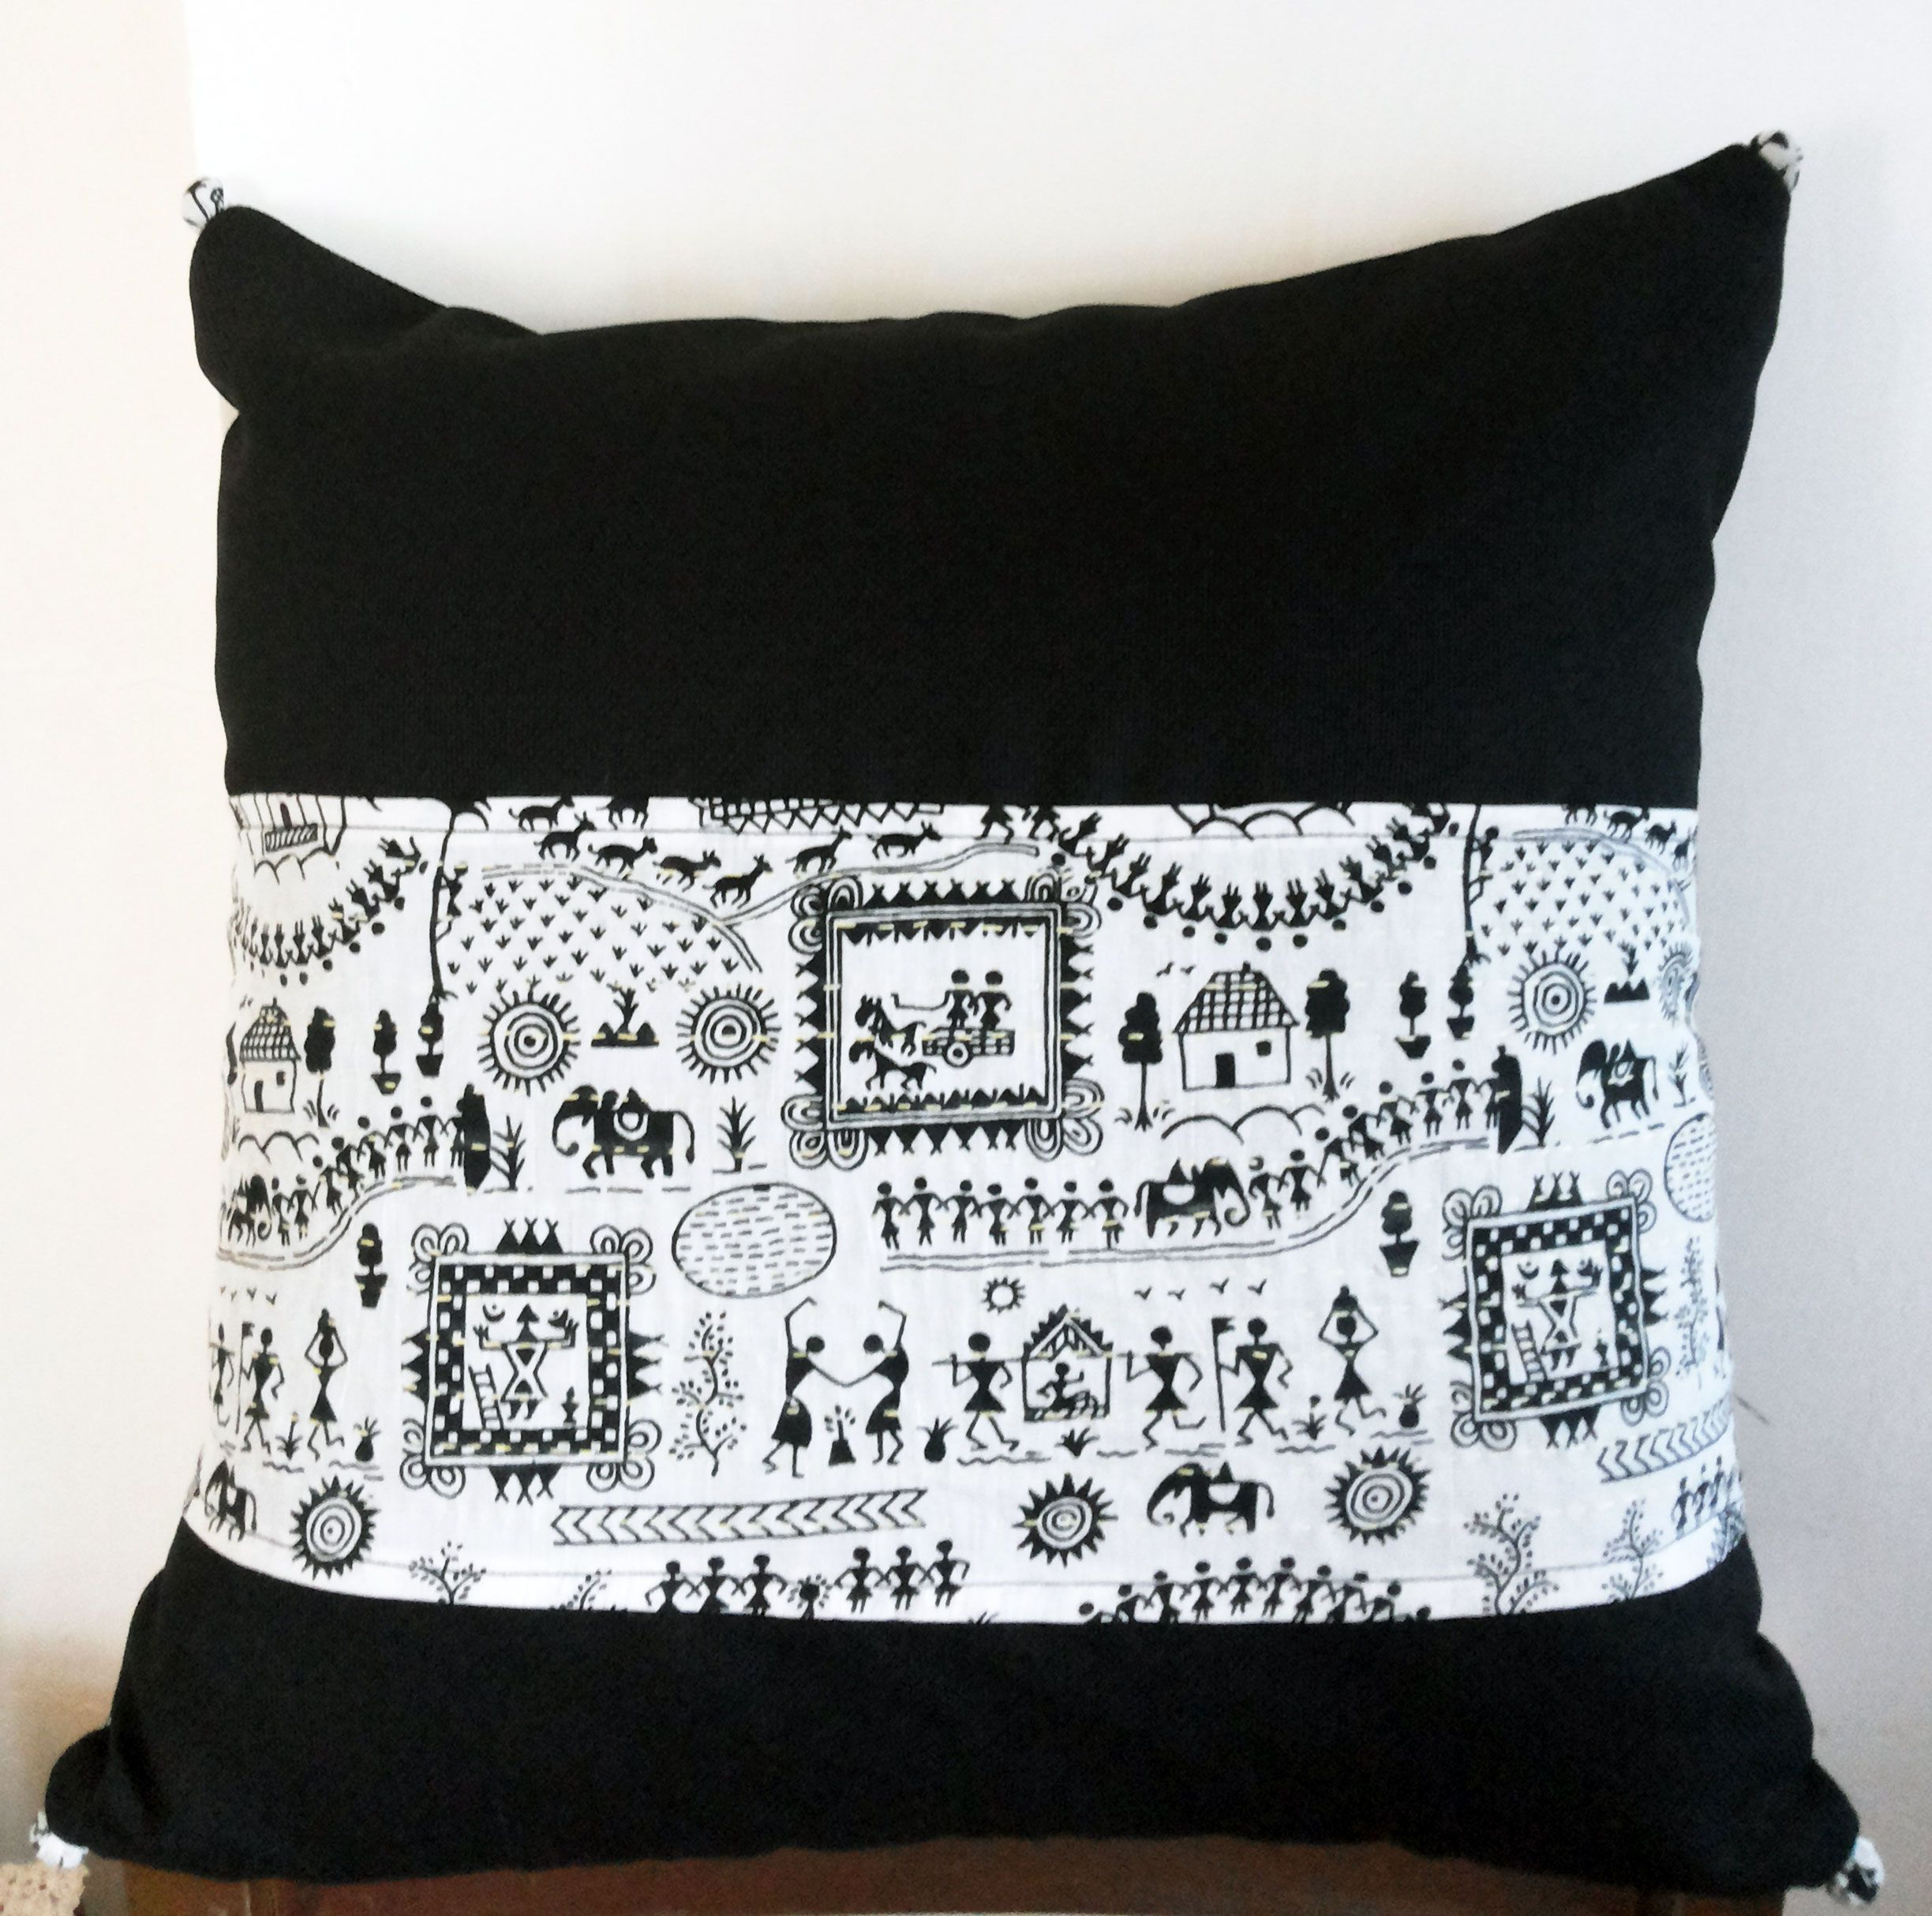 18x18 Decorative Black Throw Pillow cover in Indian Cotton Fabric